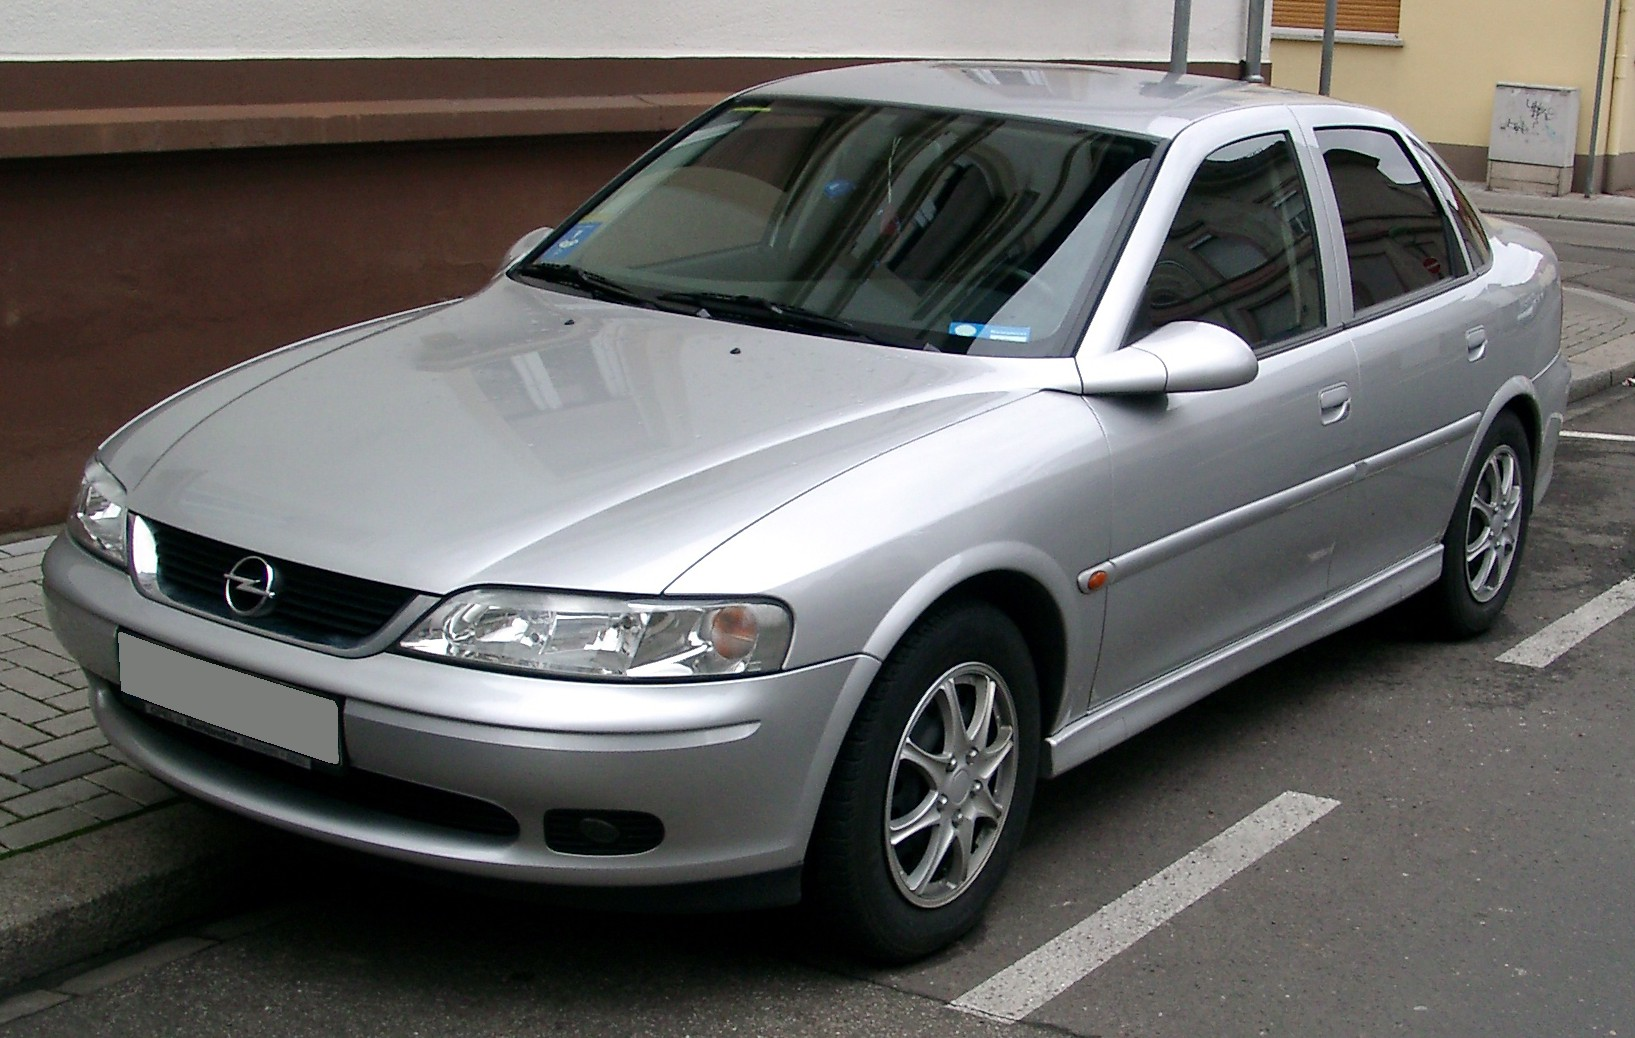 Cars holden vectra (b) 2004 #1